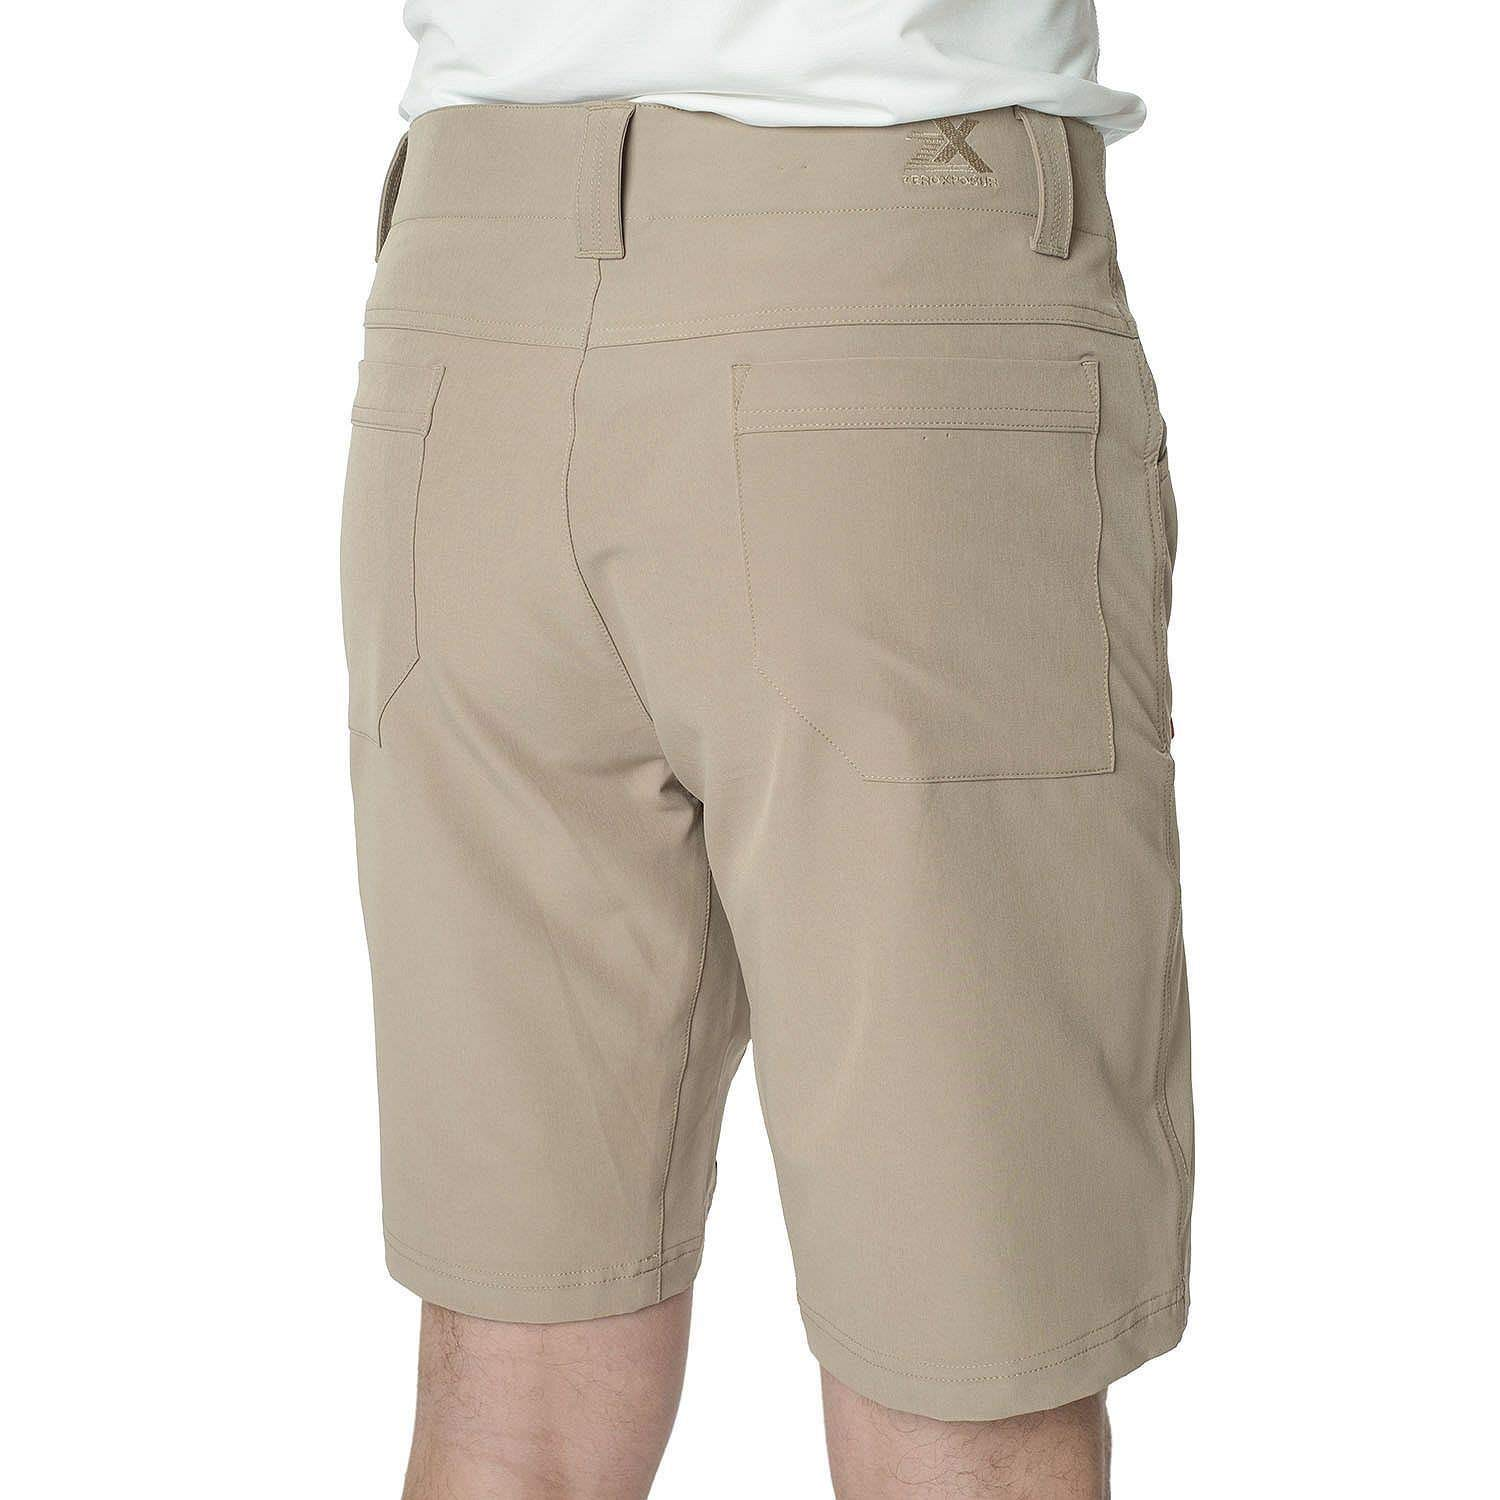 ZeroXposur Men's Lightweight Stretch Travel Shorts Color: Oak Size: (30)-(31)-(32)-(33)-(34)-(36)-(38)-(40) New Tags (40) by ZeroXposur (Image #1)